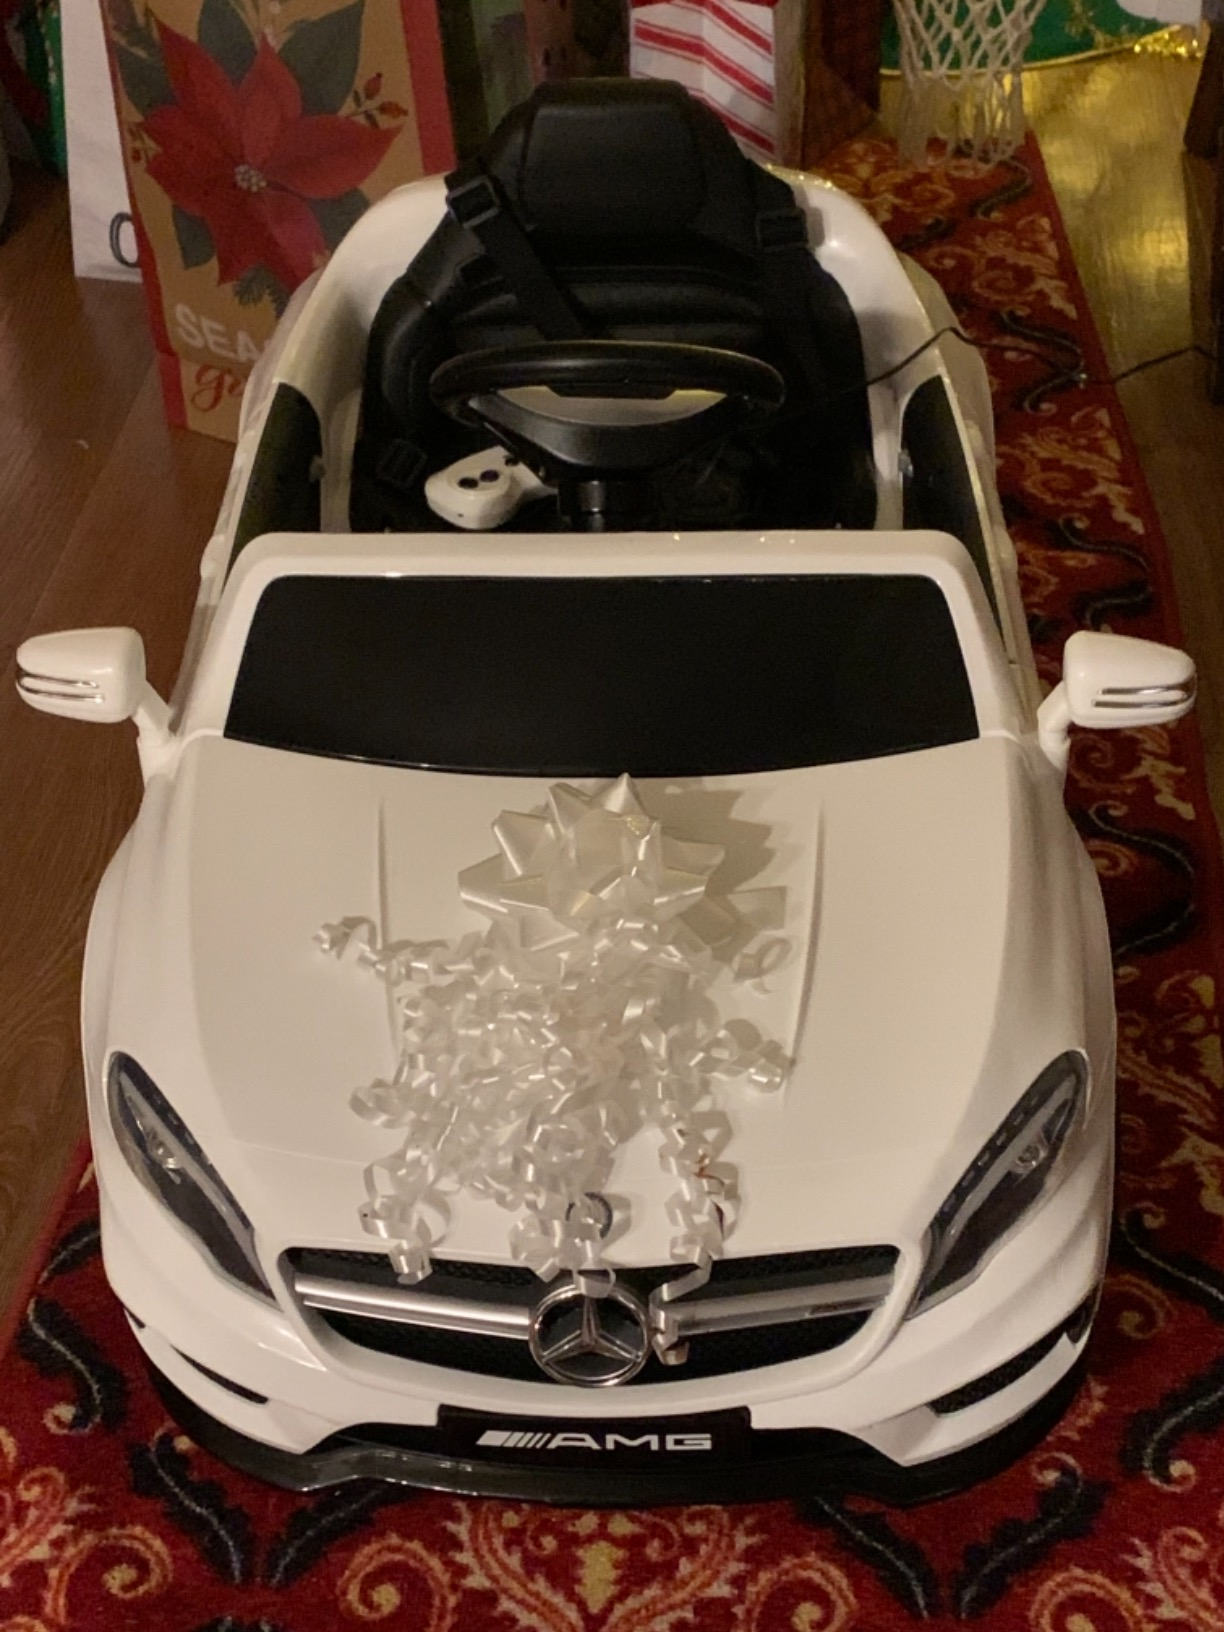 Licensed Mercedes Benz RC Car Toy with Double Doors, White photo review